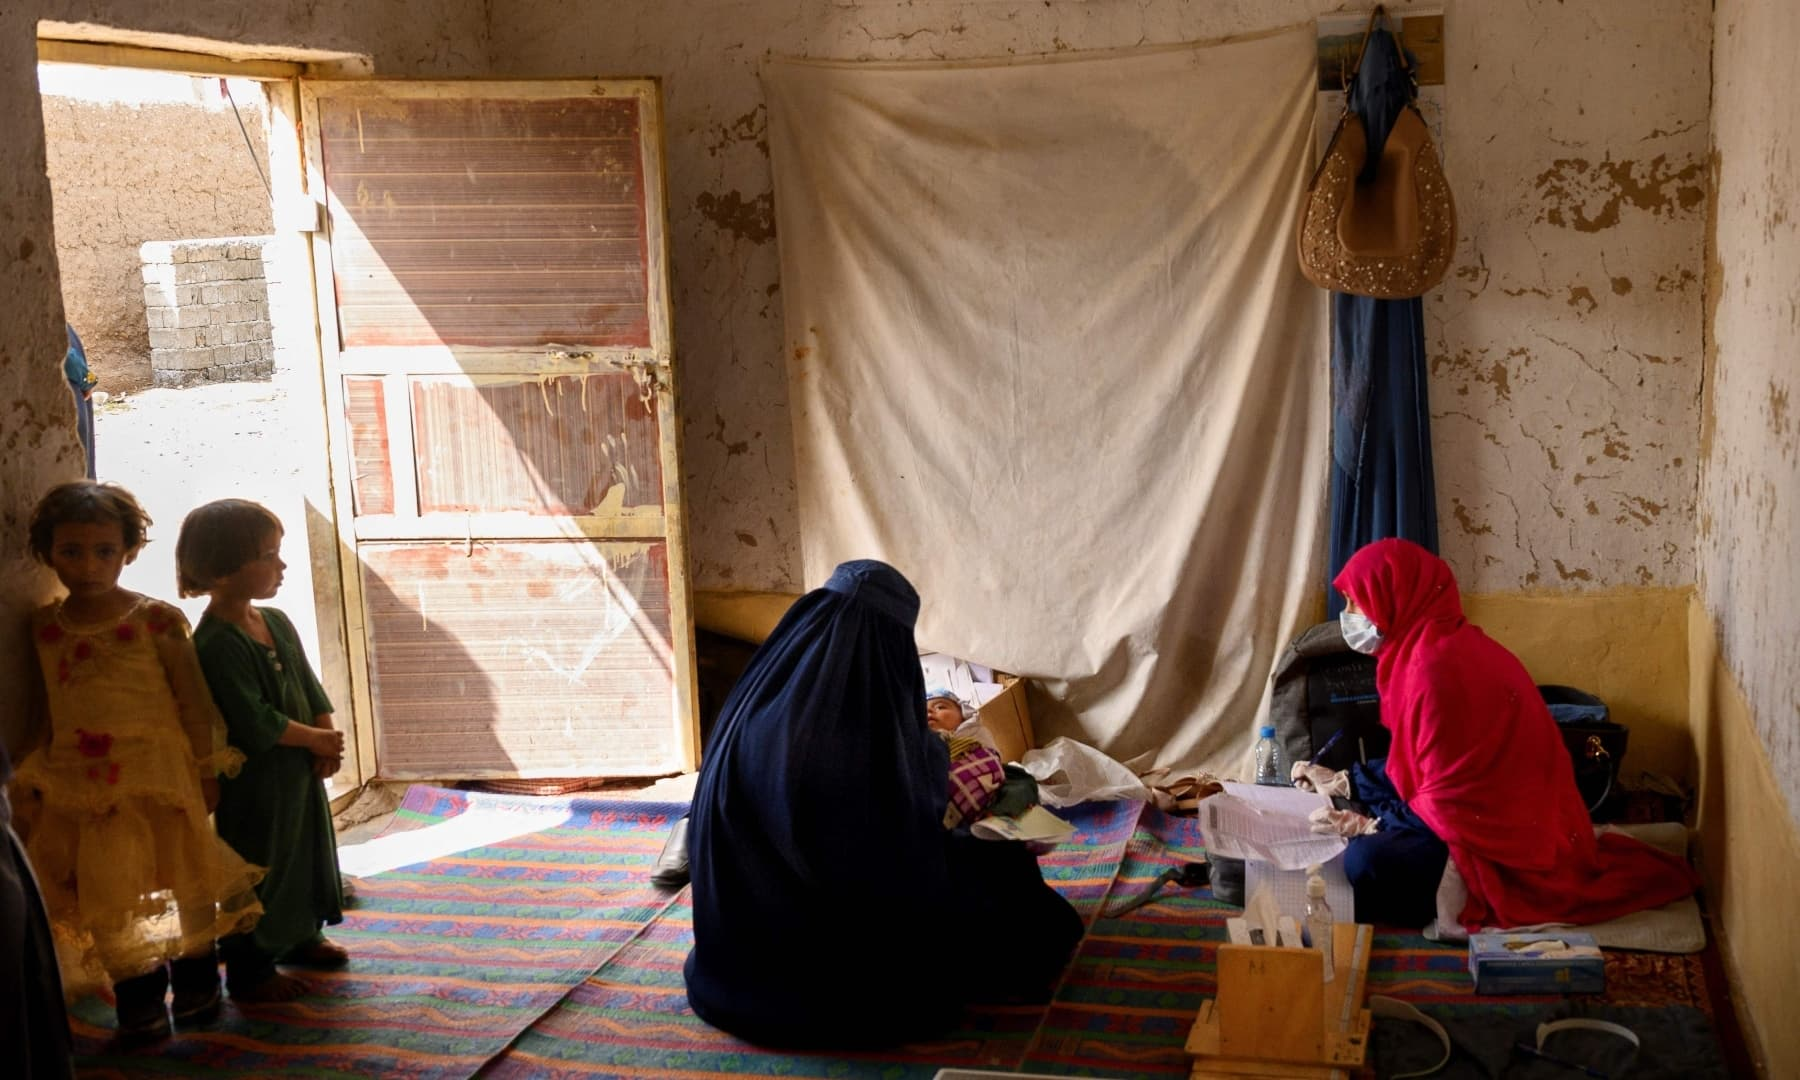 A nurse (R) registers a patient at a mobile clinic set up at the residence of a local elder in Yarmuhamad village, near Lashkar Gah in Helmand province, Afghanistan, March 28, 2021. — AFP/File